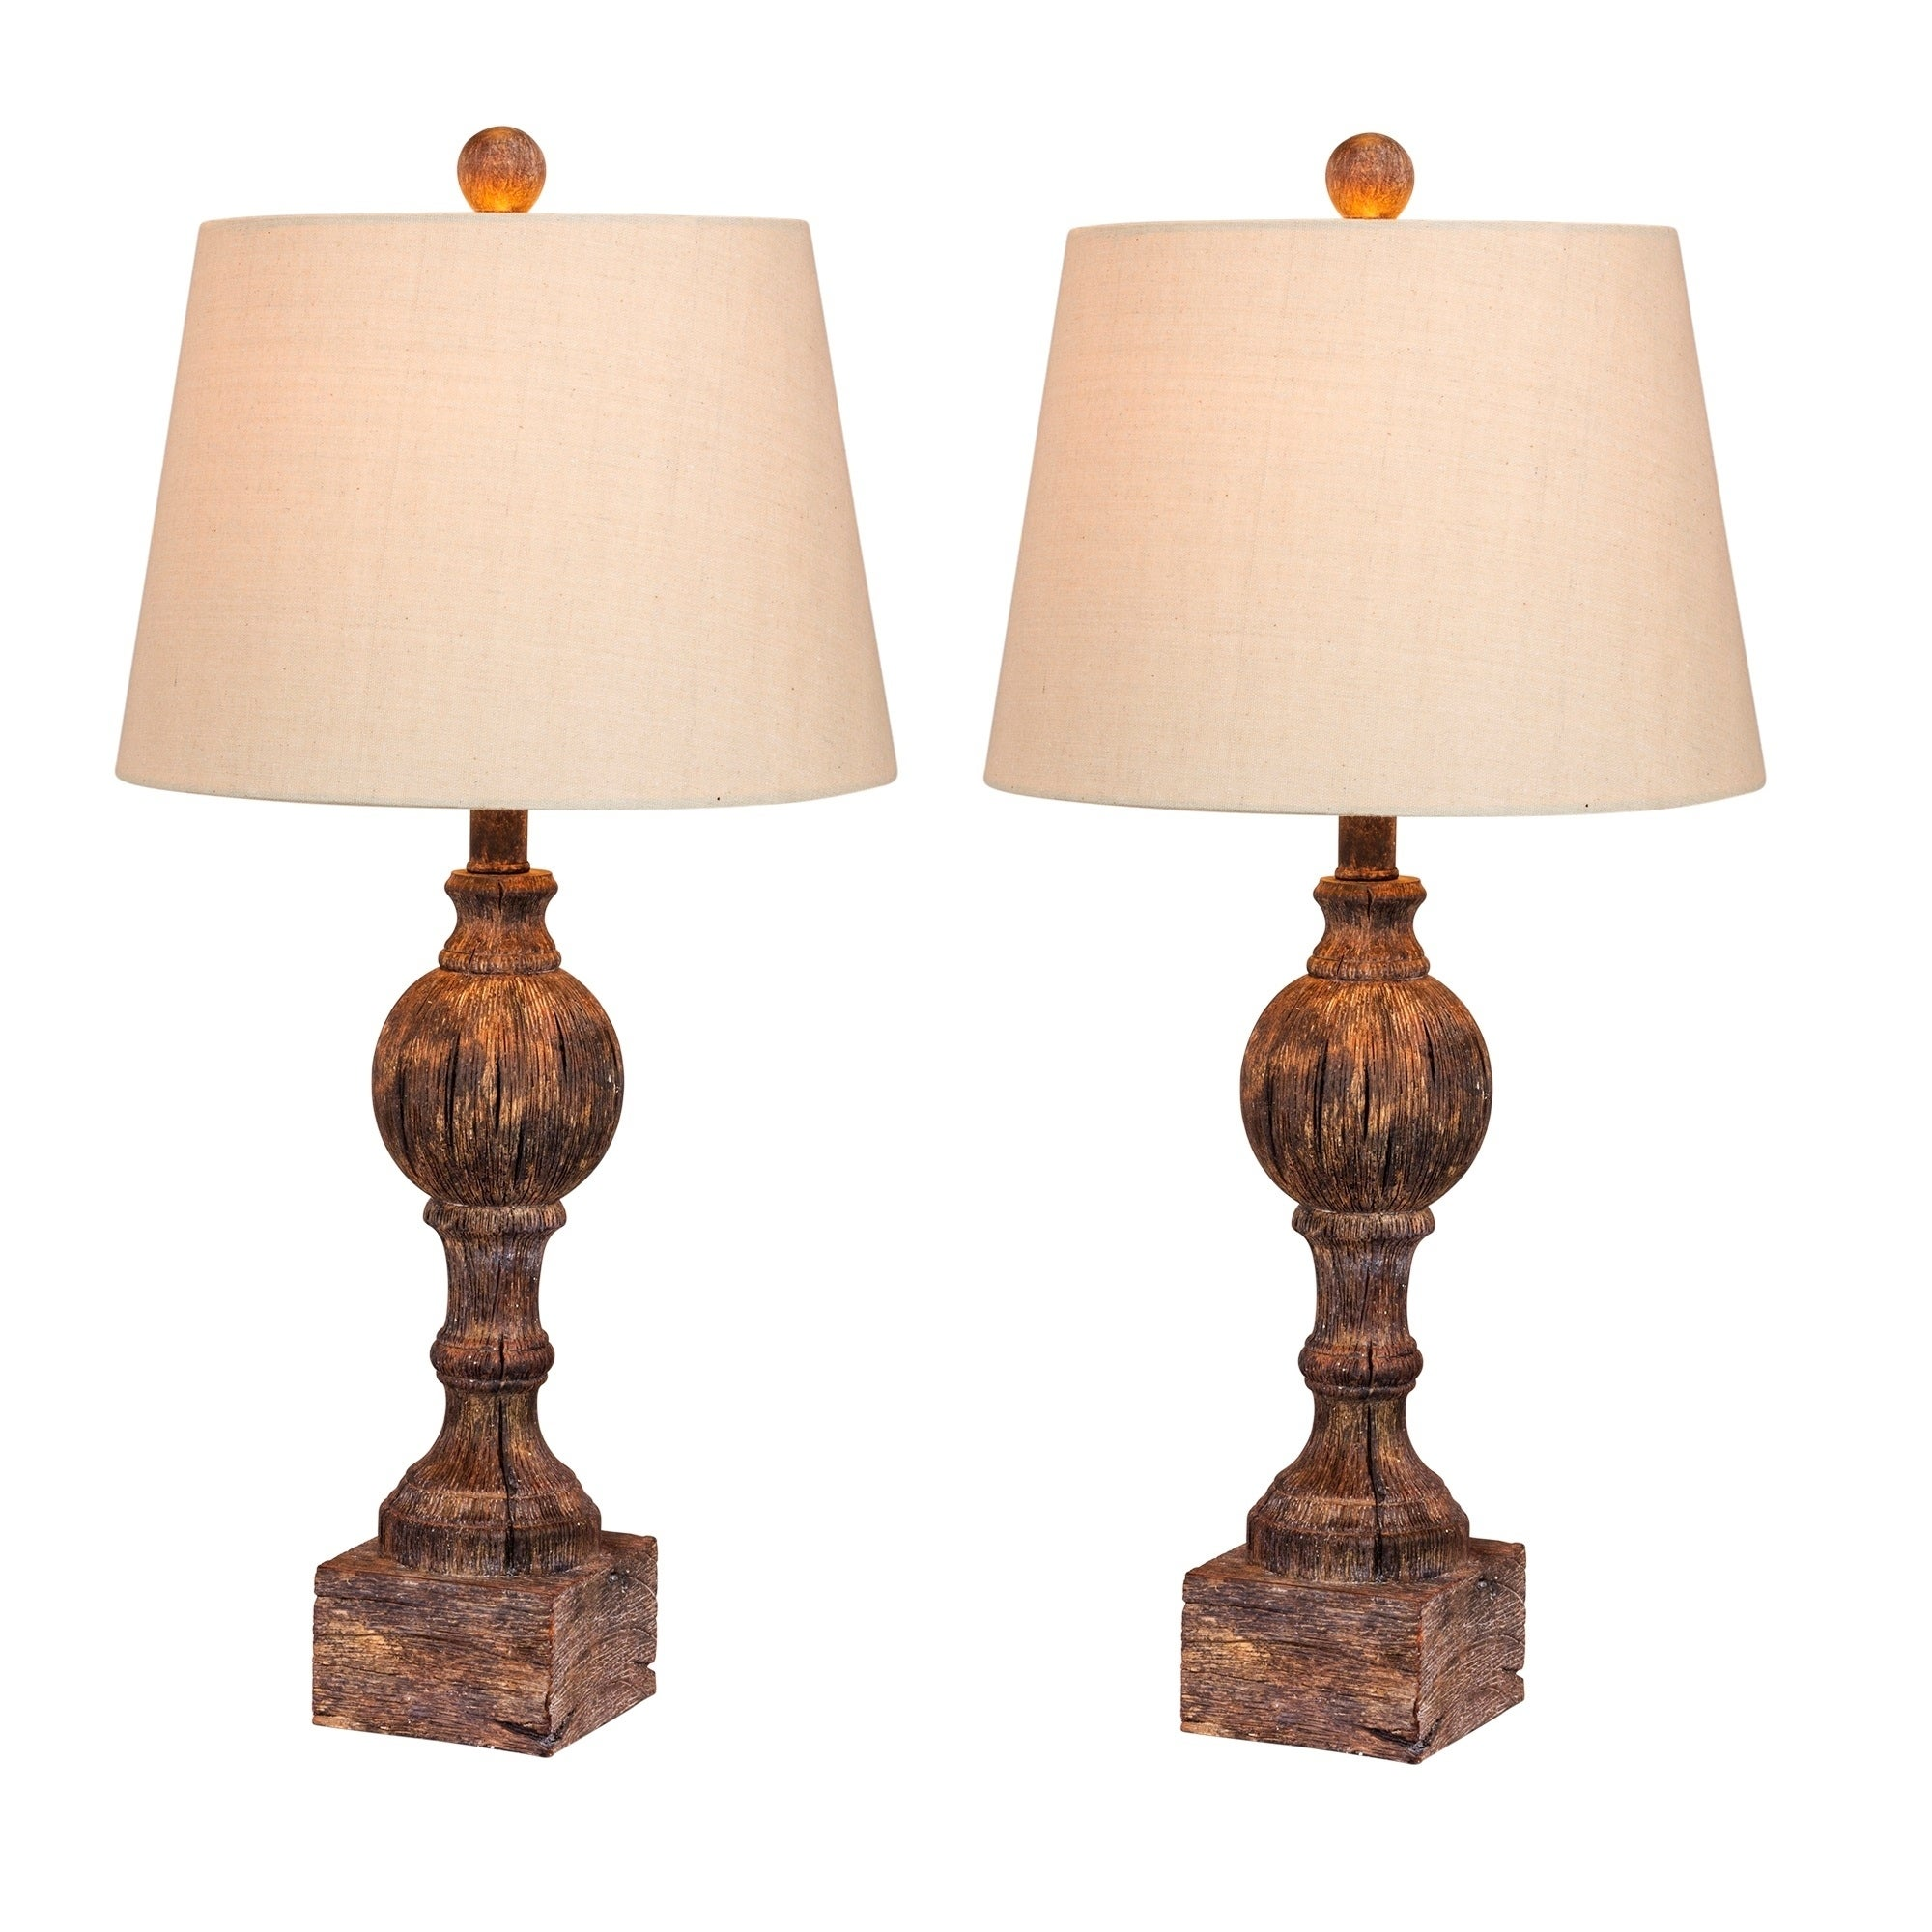 Fangio Lightings 6239CABR-2PK 26.5 in. Pair Of Distressed, Sculpted Column Resin Table Lamps in a Cottage Antique Brown Finish (60 to 100 Watts)